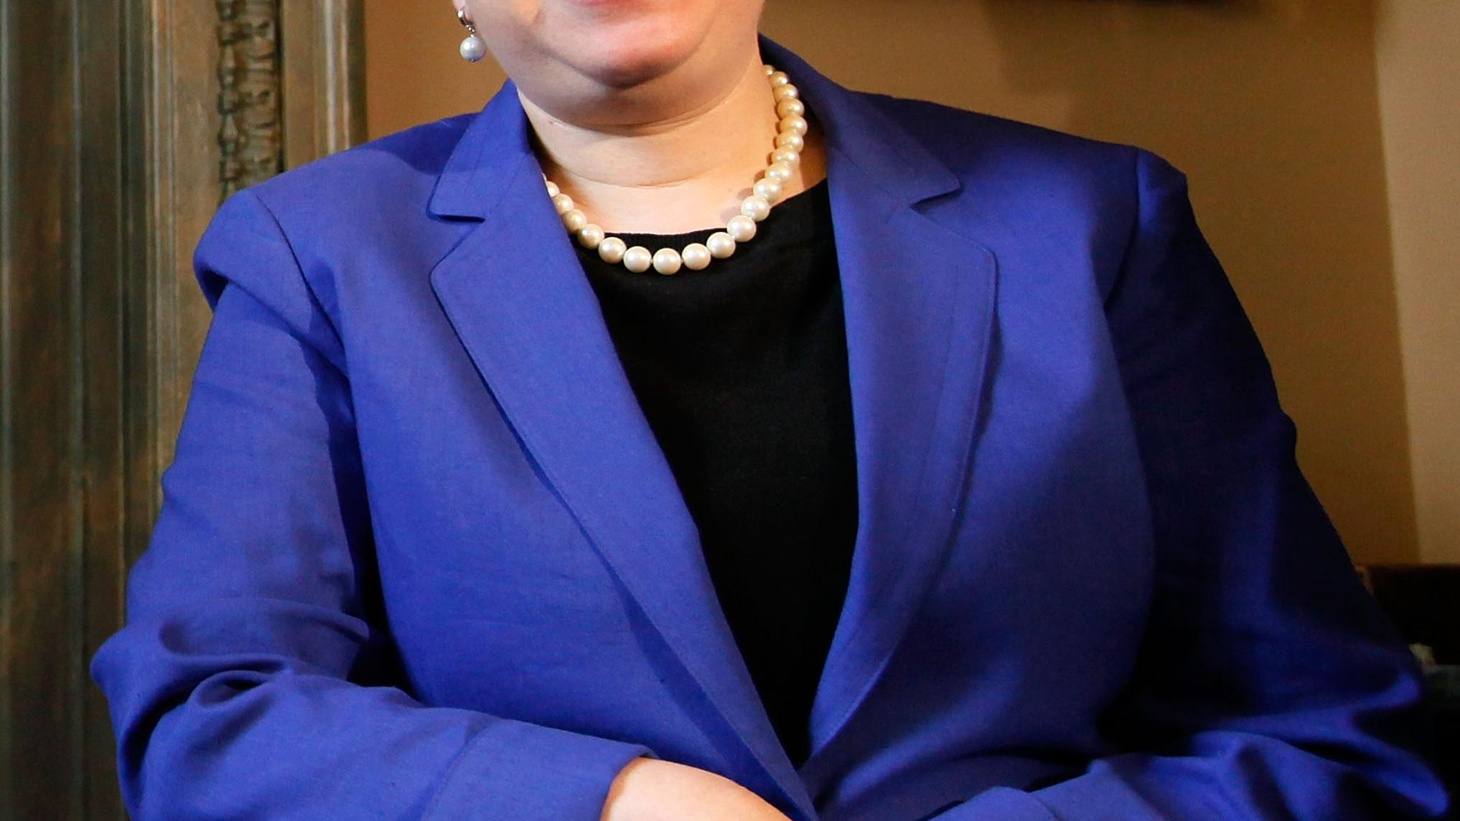 If Elena Kagan's nomination is confirmed, it'll be the first time in history there's no white, Anglo-Saxon protestant on the US Supreme Court. There will be 6 Catholics and 3 Jews and nobody who did not go to law school at Harvard or Yale. Do religious background and education determine how a judge sees the law?  What about ideology, legal philosophy—and sexual orientation? Does the high court's changing makeup mark the end of white, Anglo-Saxon protestant domination of a country founded by WASP's? Lastly, what happened to LeBron James and his Cleveland Cavaliers?